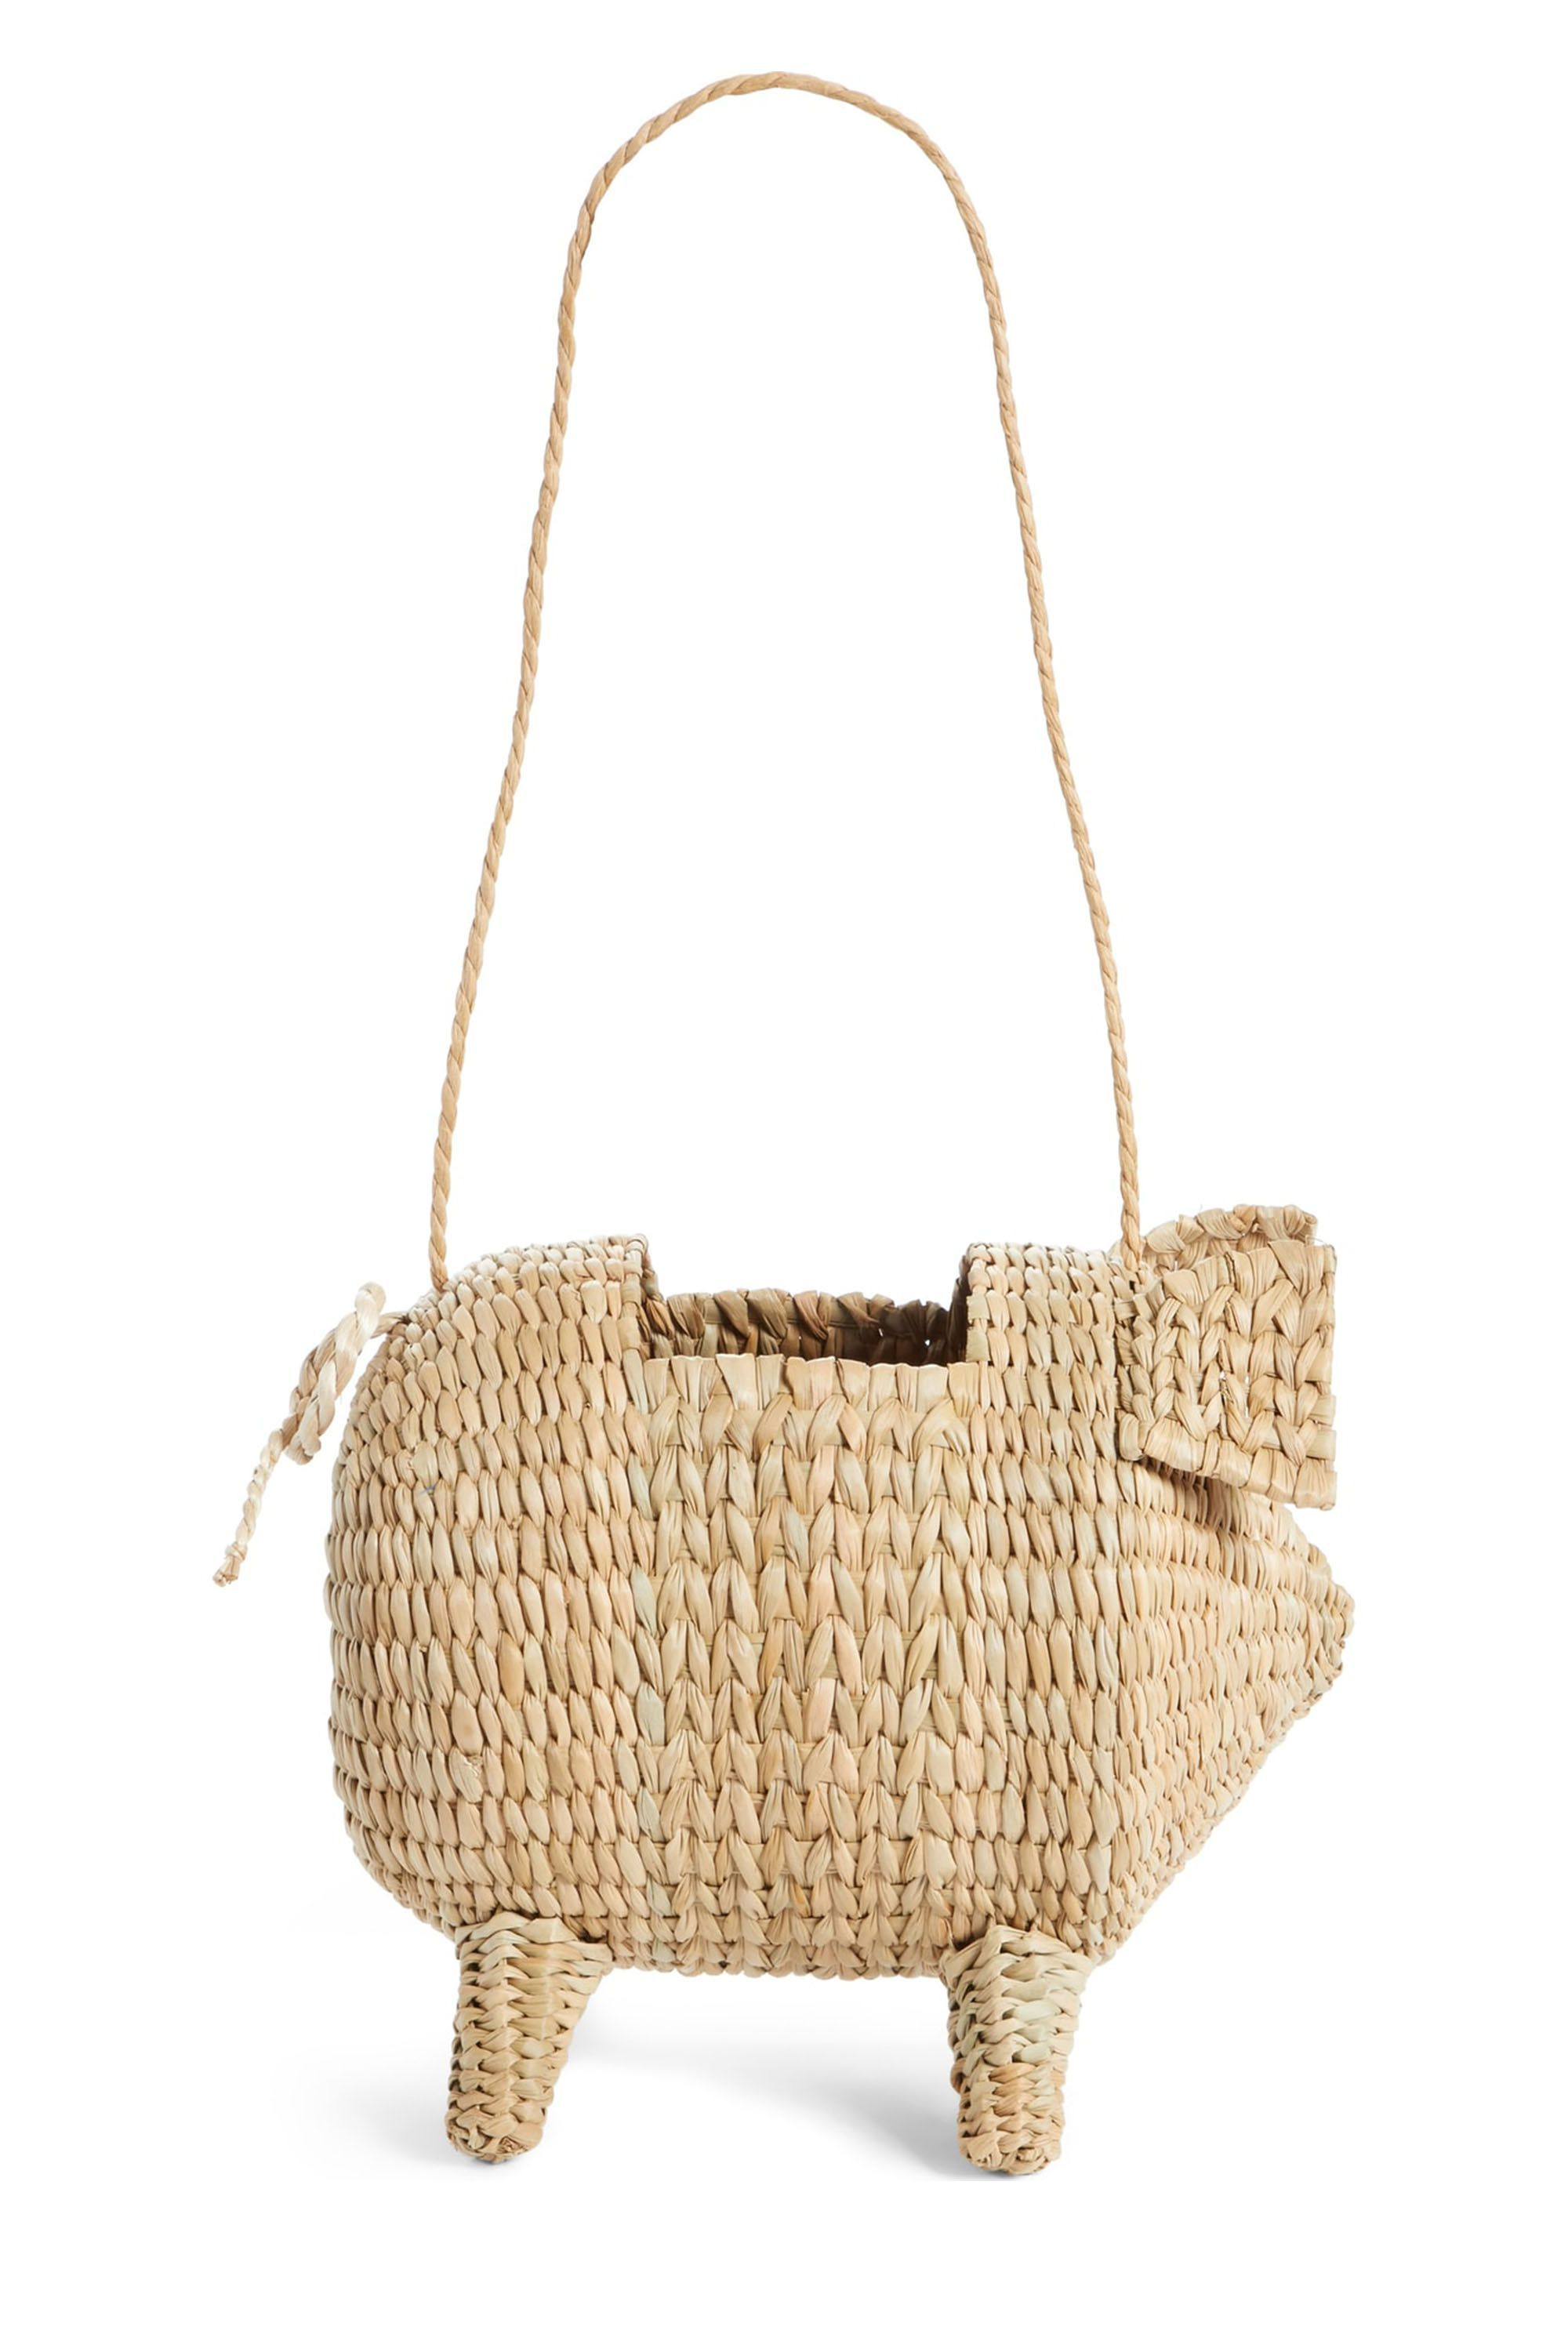 1529595748-small-bags-0001-straw-cult-1529595740.jpg?crop=1xw:1xh;center,top&resize=480:*